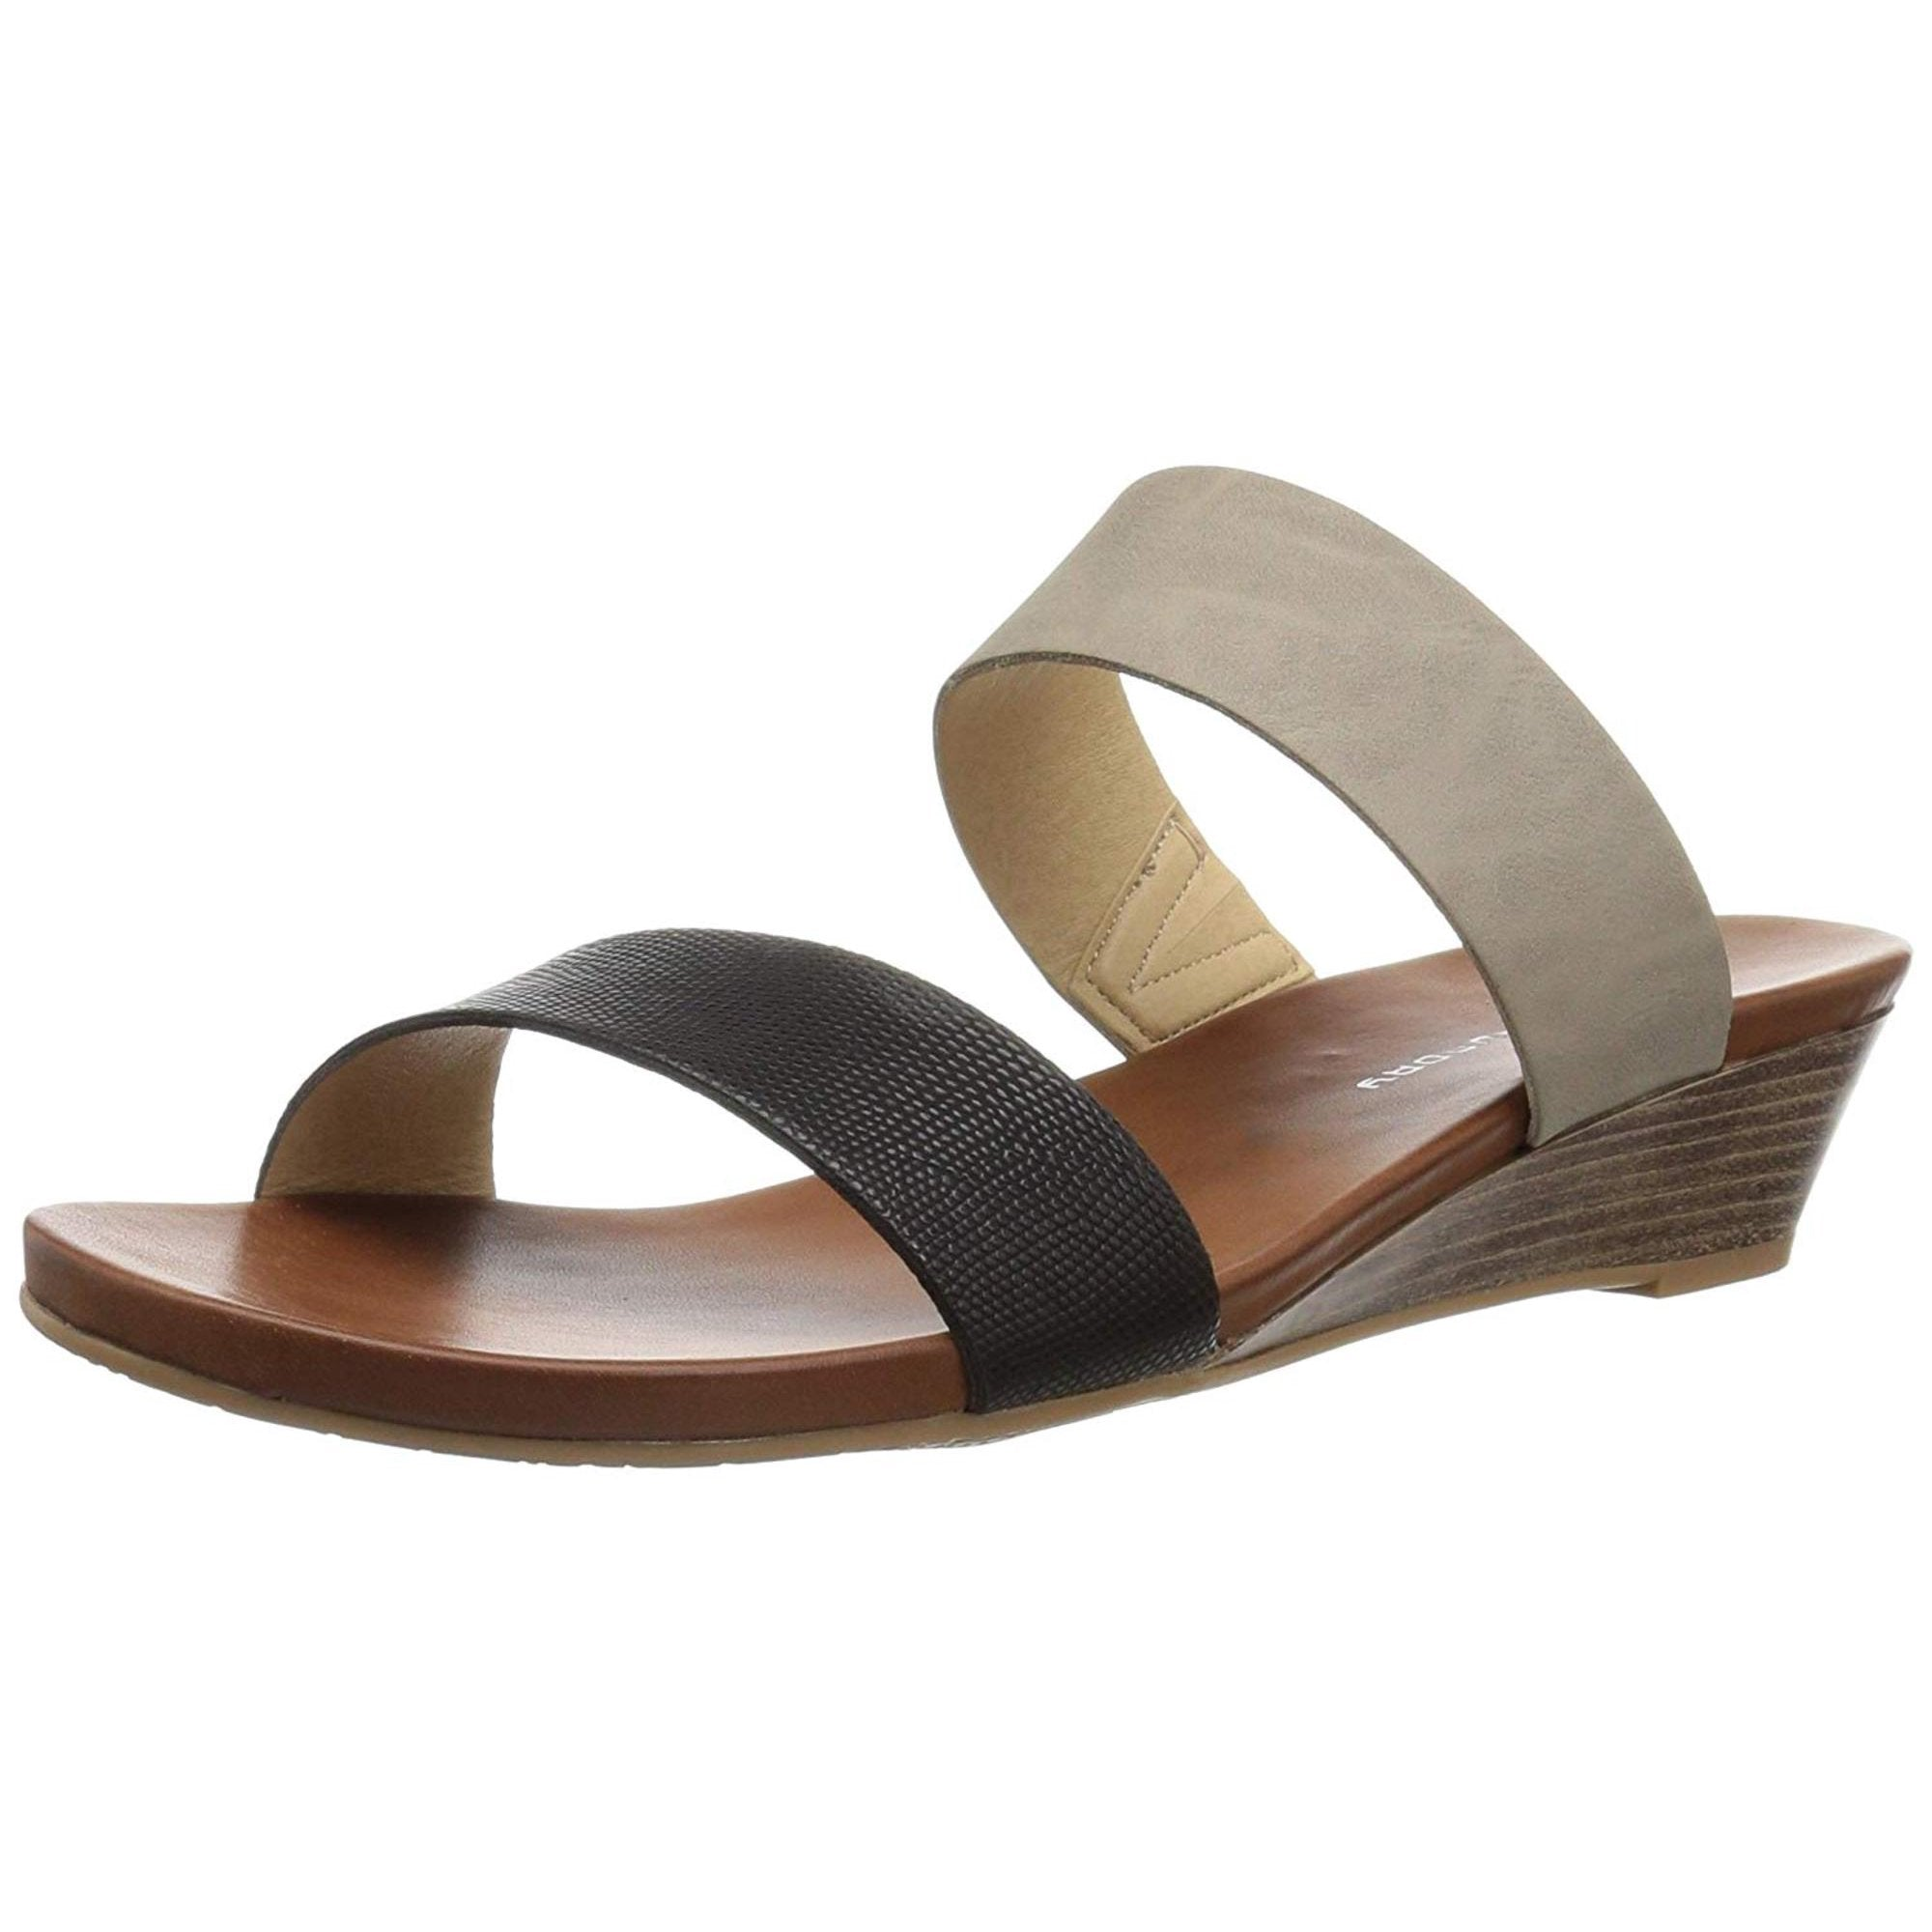 Aneesa Wedge Sandal